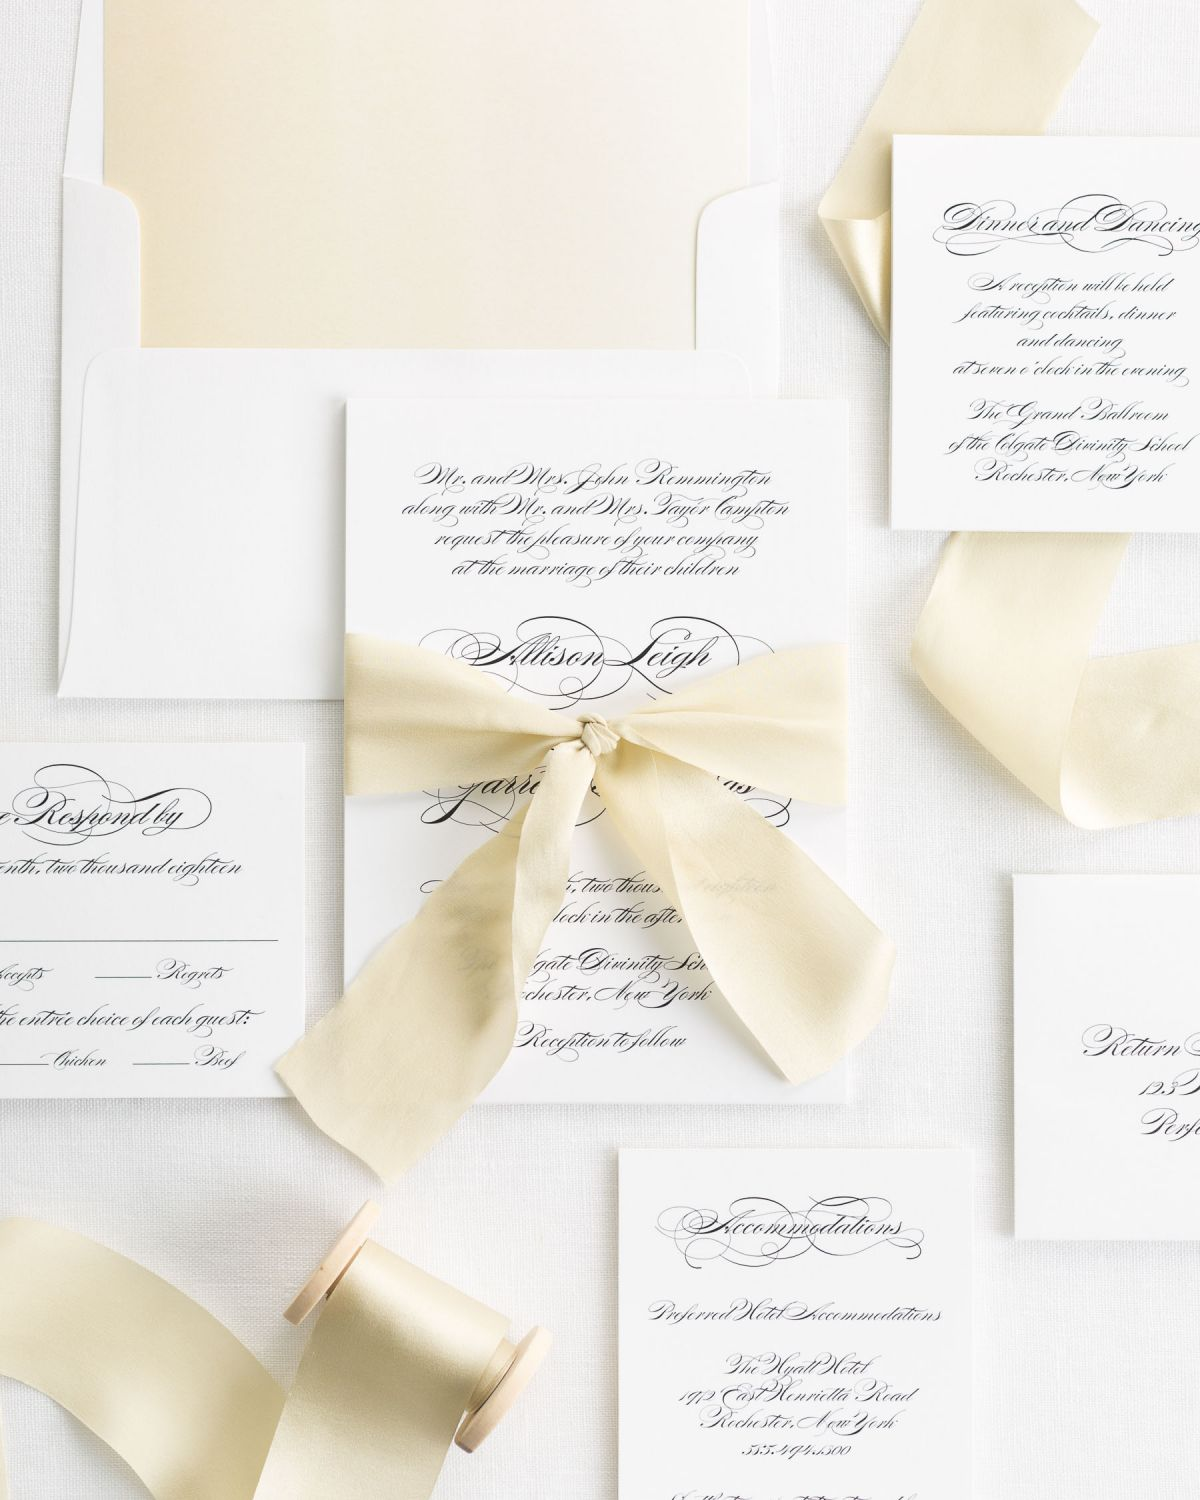 Complete Wedding Invitation Suite with Honey Silk Ribbon and Enclosures